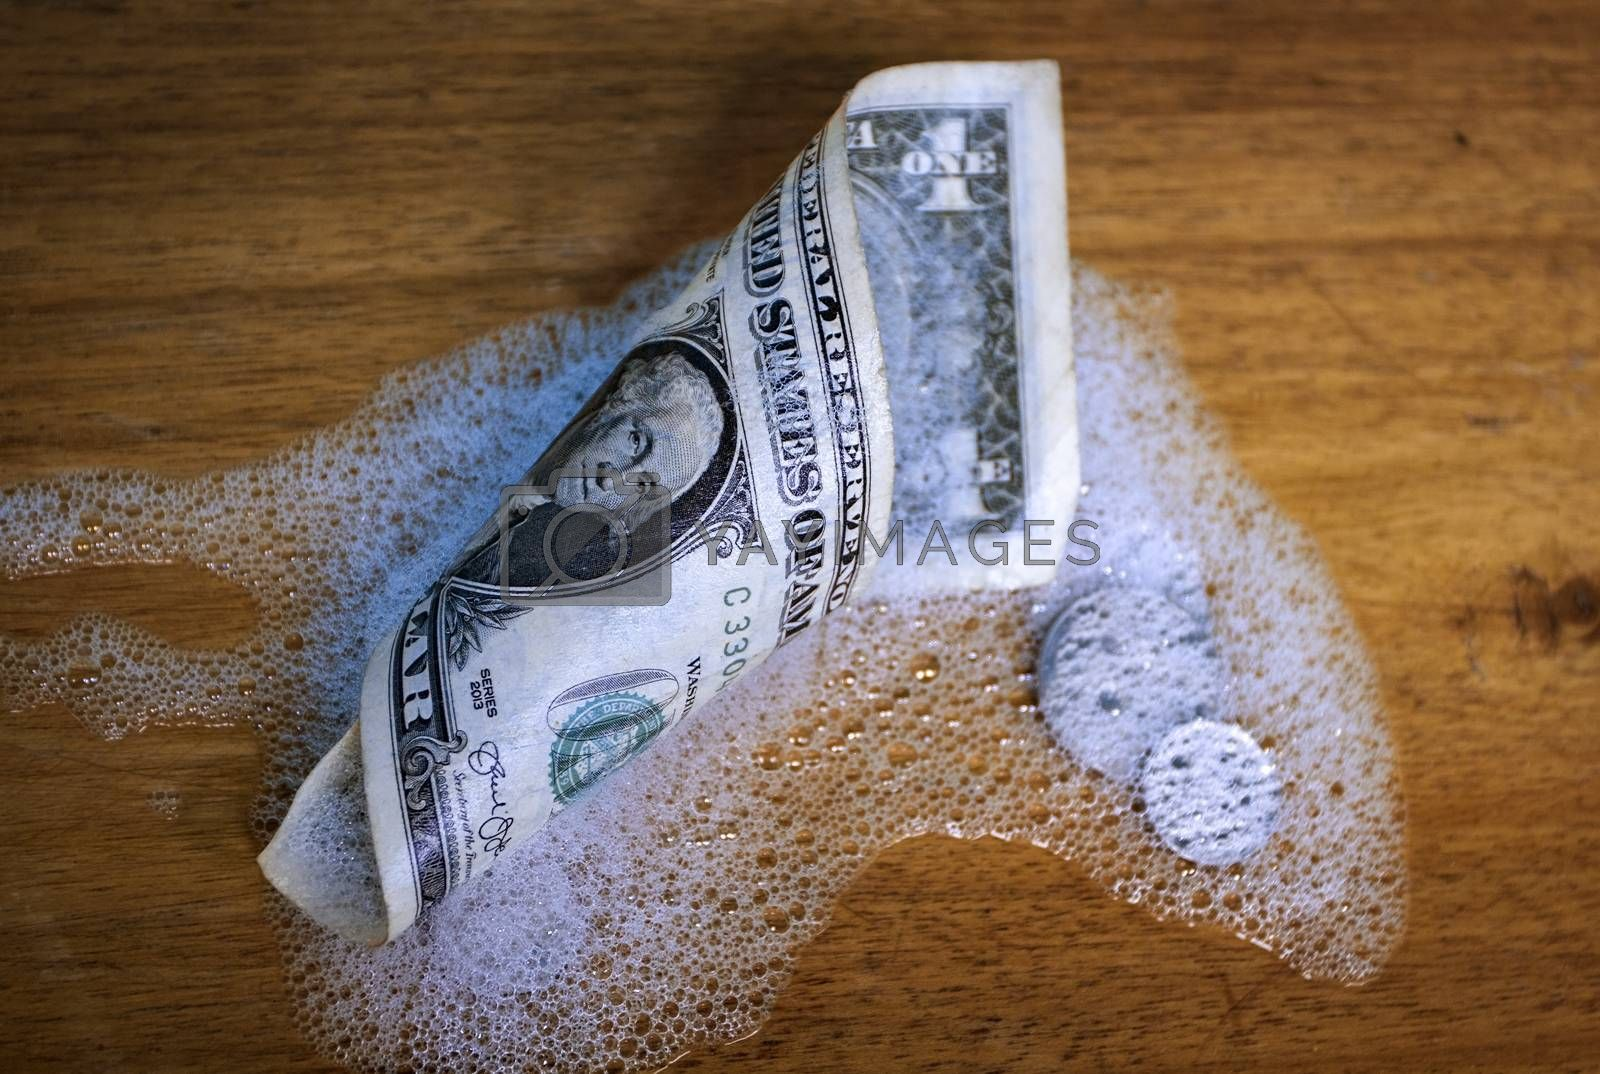 A rolled up dollar bill and coins, partially covered by foam on a wooden surface